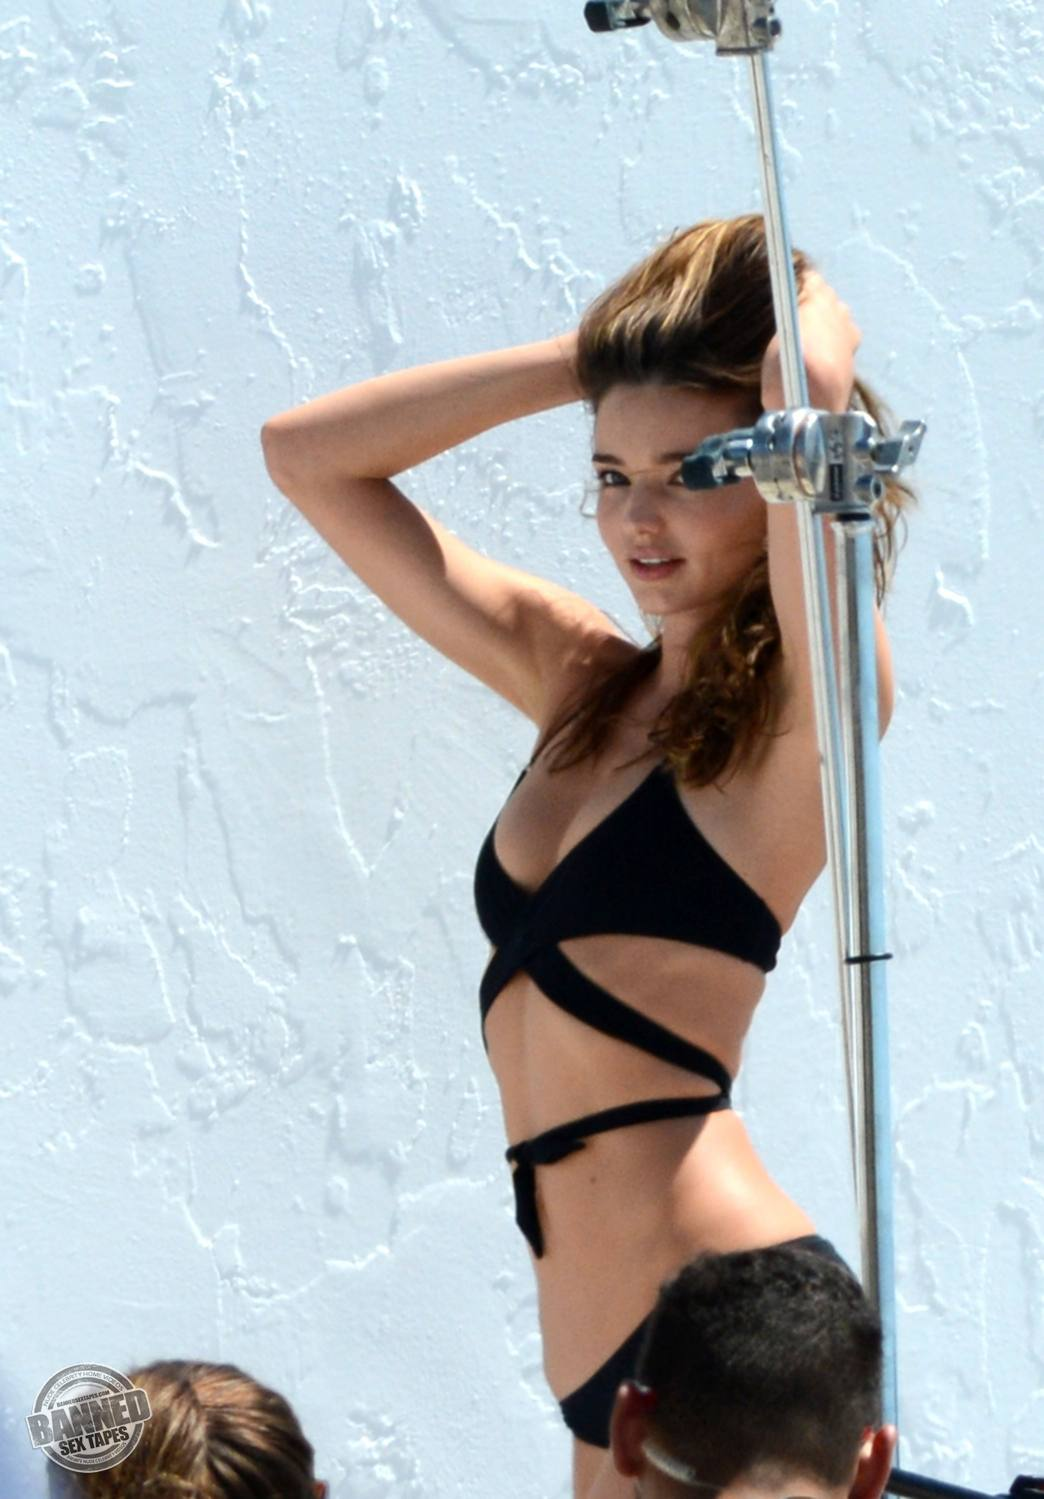 miranda kerr fully naked at largest celebrities archive